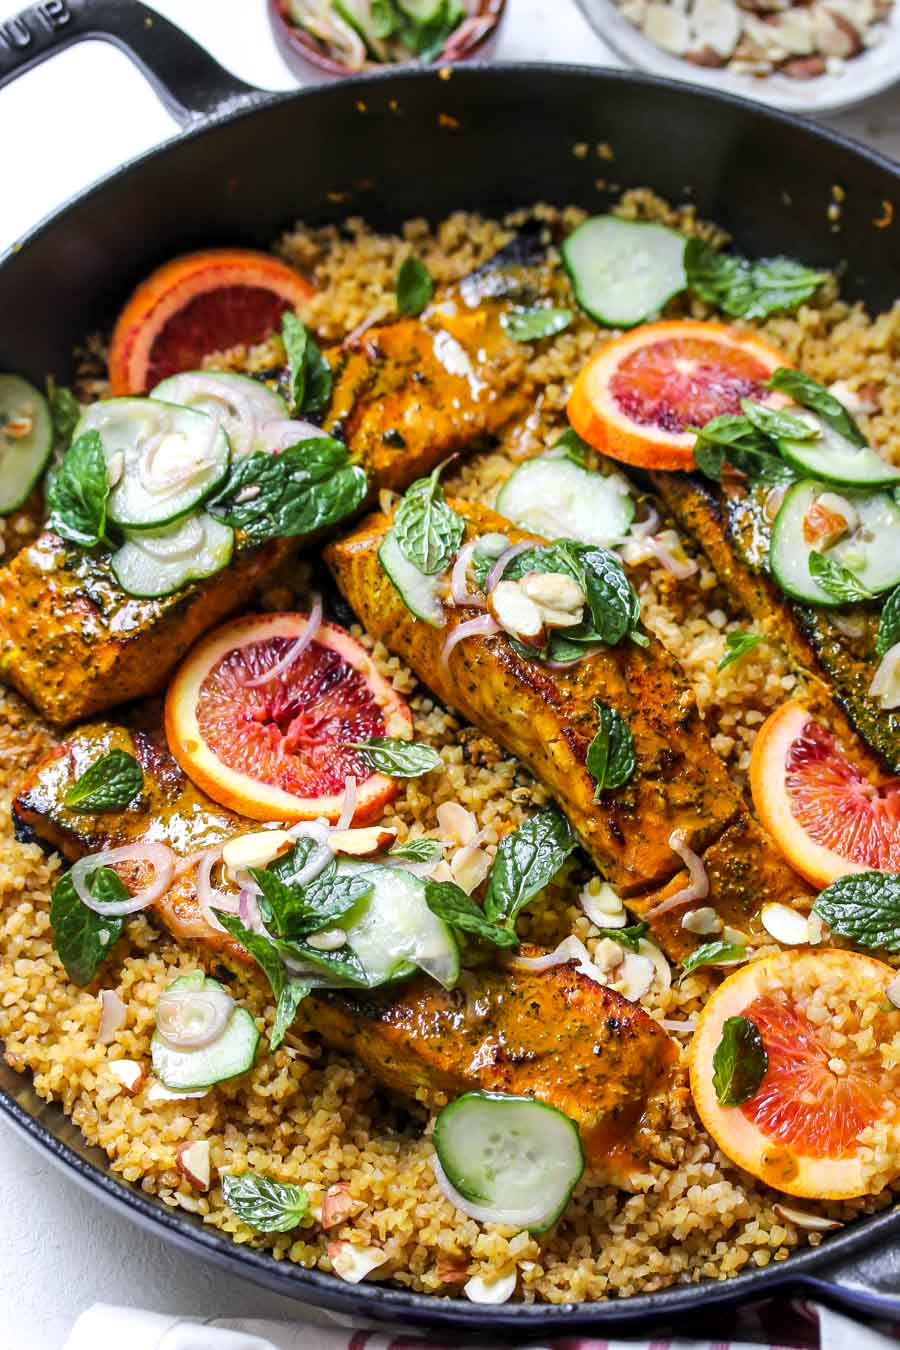 Salmon and bulgur skillet with cucumber-mint salad